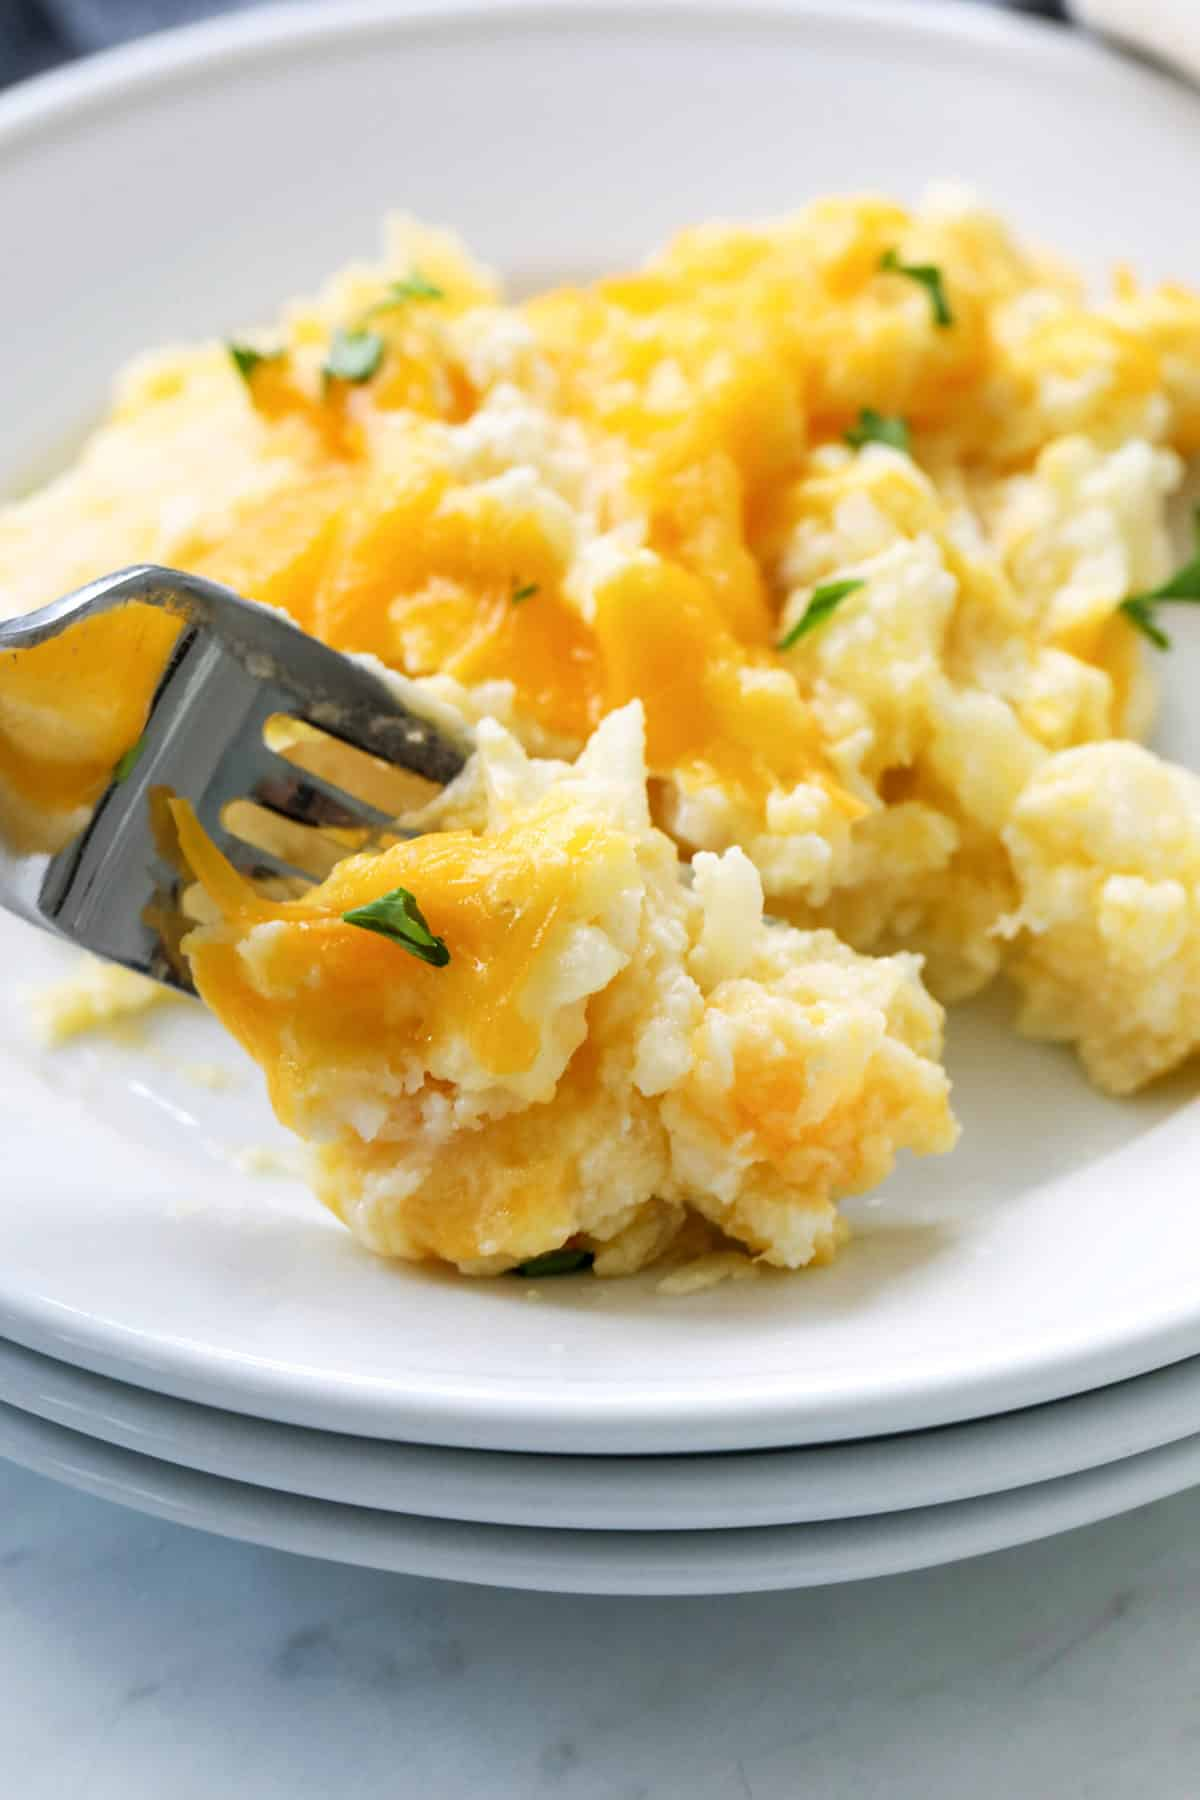 forkful of hashbrown casserole served on a white plate